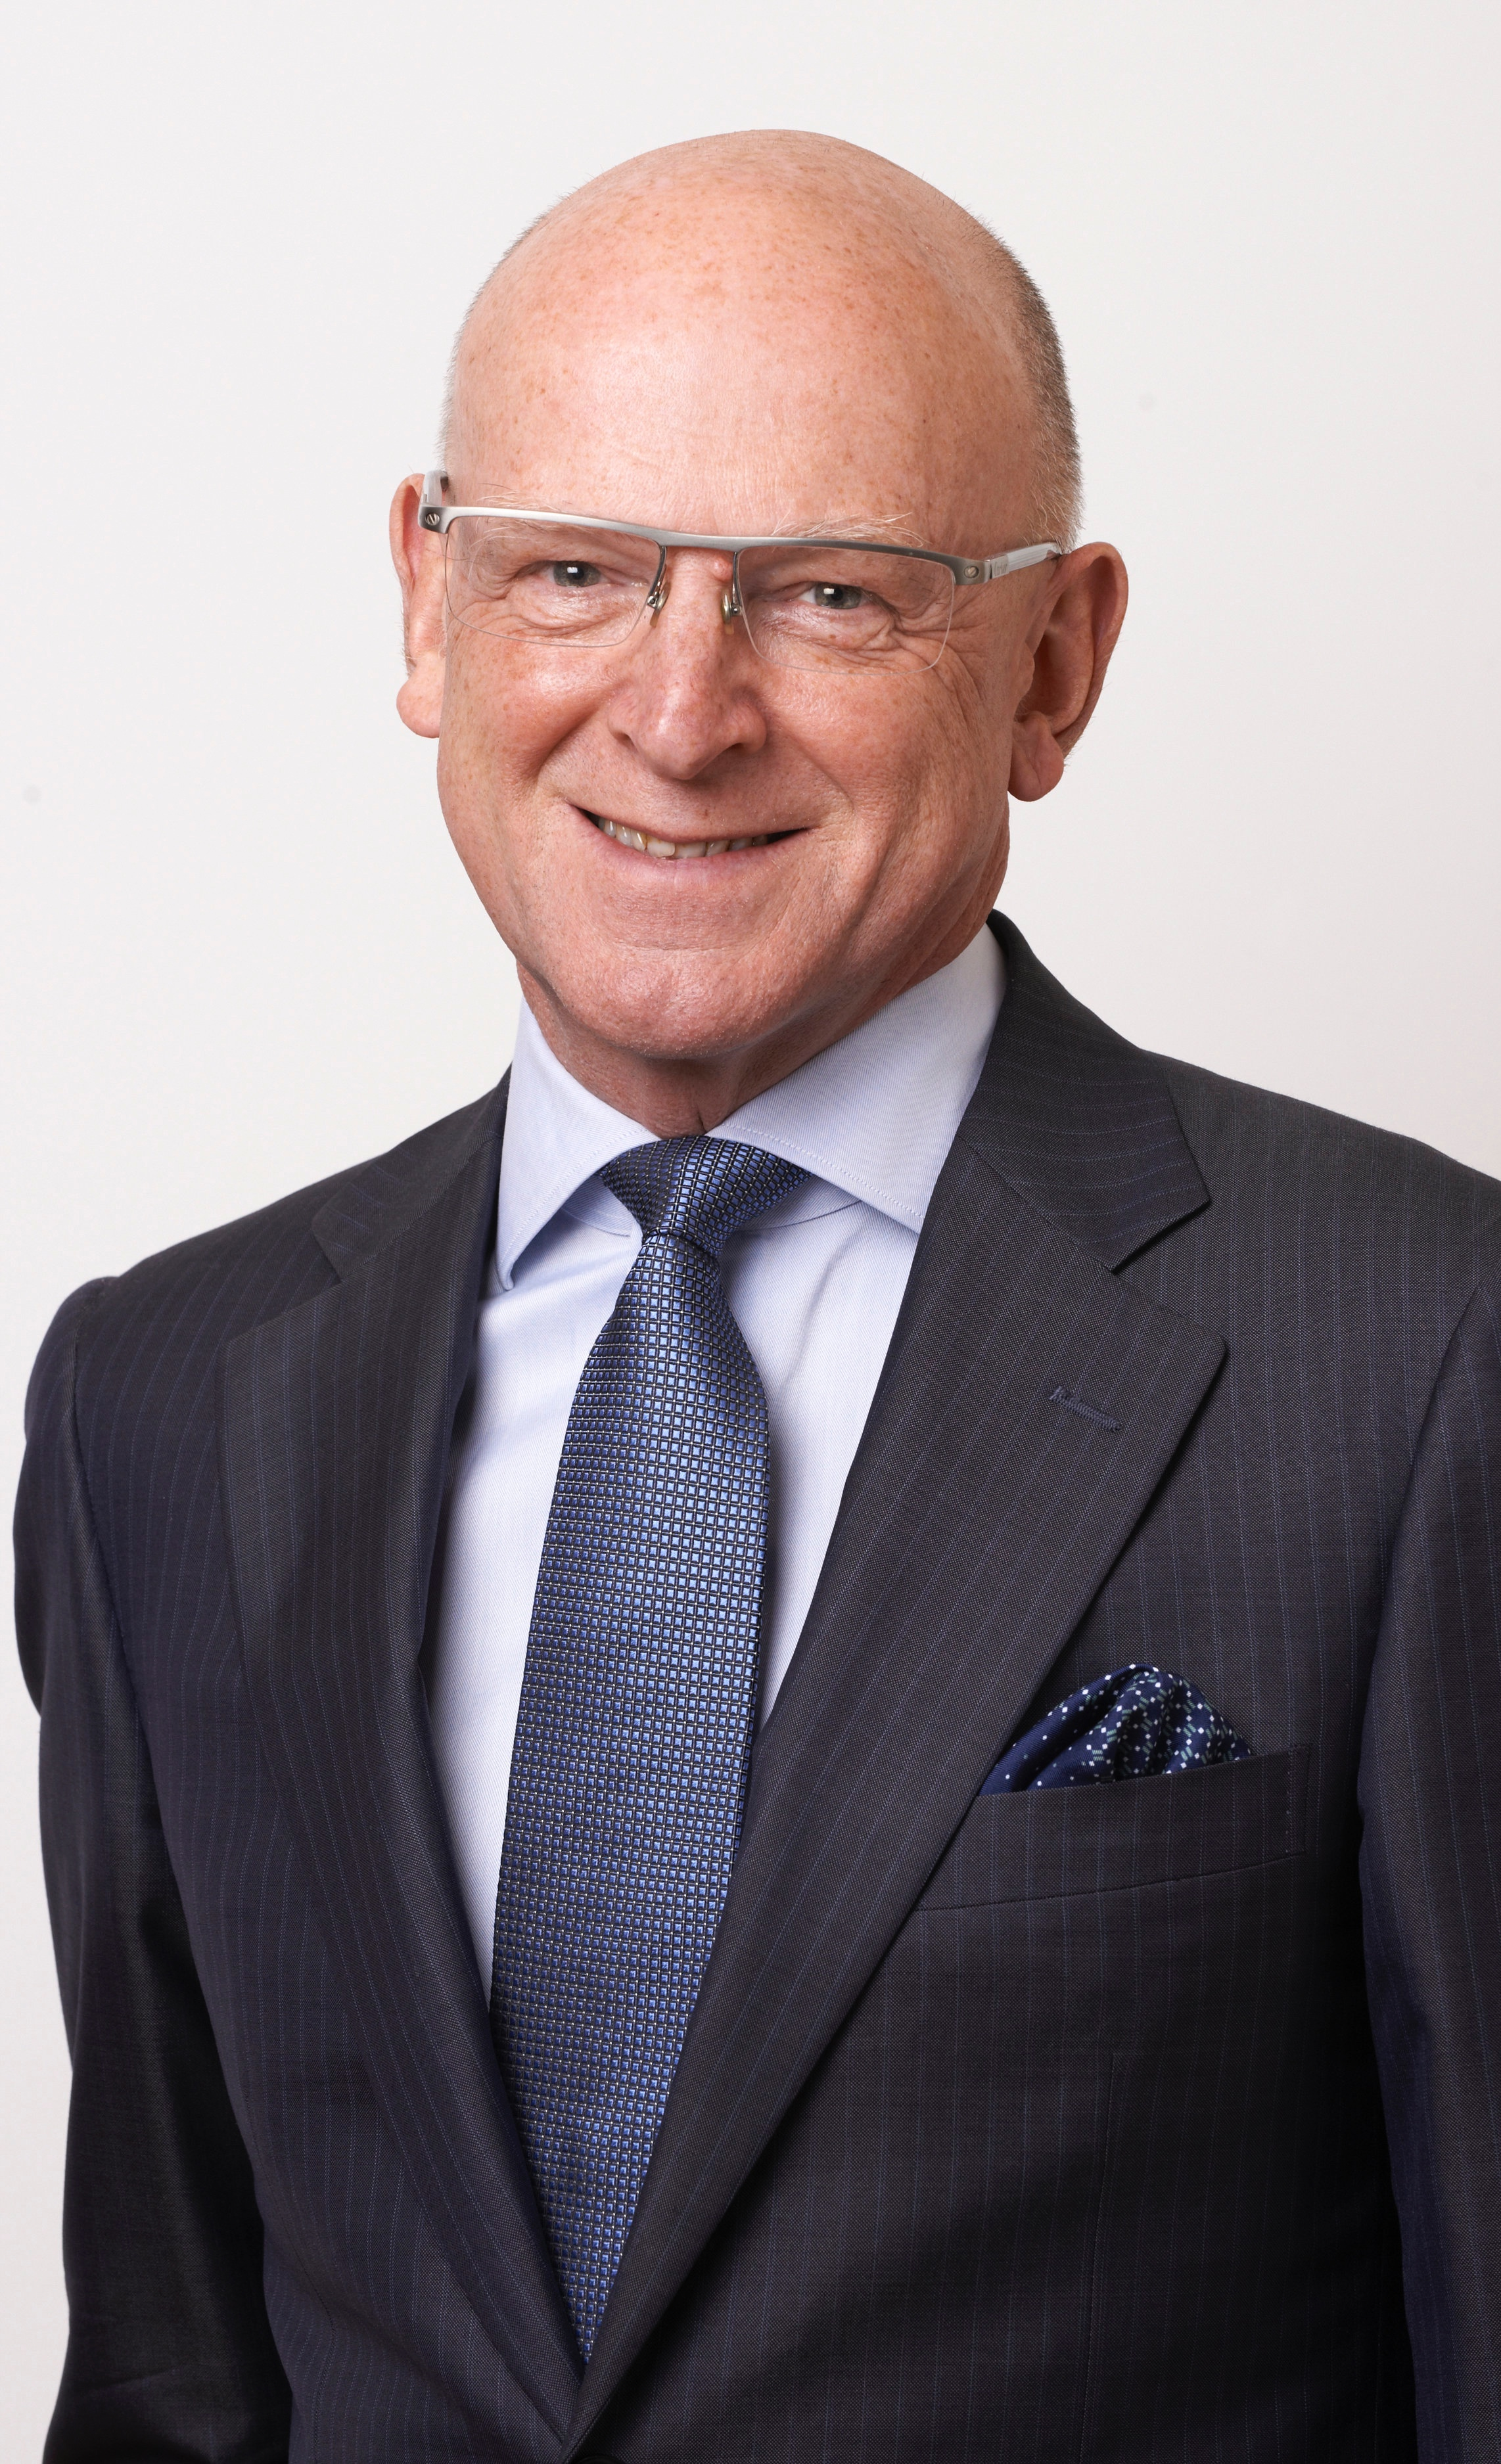 Tim Jones - Chairman CH&COTim established CH&Co with his late wife, Robyn, in 1991. He originally trained as a chartered accountant with Price Waterhouse and was Financial Controller of Marvel Comics between 1986 and 1990.Tim has always been actively involved in all aspects of the business, focusing principally on strategic direction, business planning and client relations helping the group increase its turnover to £265m operating at over 700 sites across the country with approaching 6,000 staff. Tim is also involved with a number of charities and is a trustee of Hospitality Action.